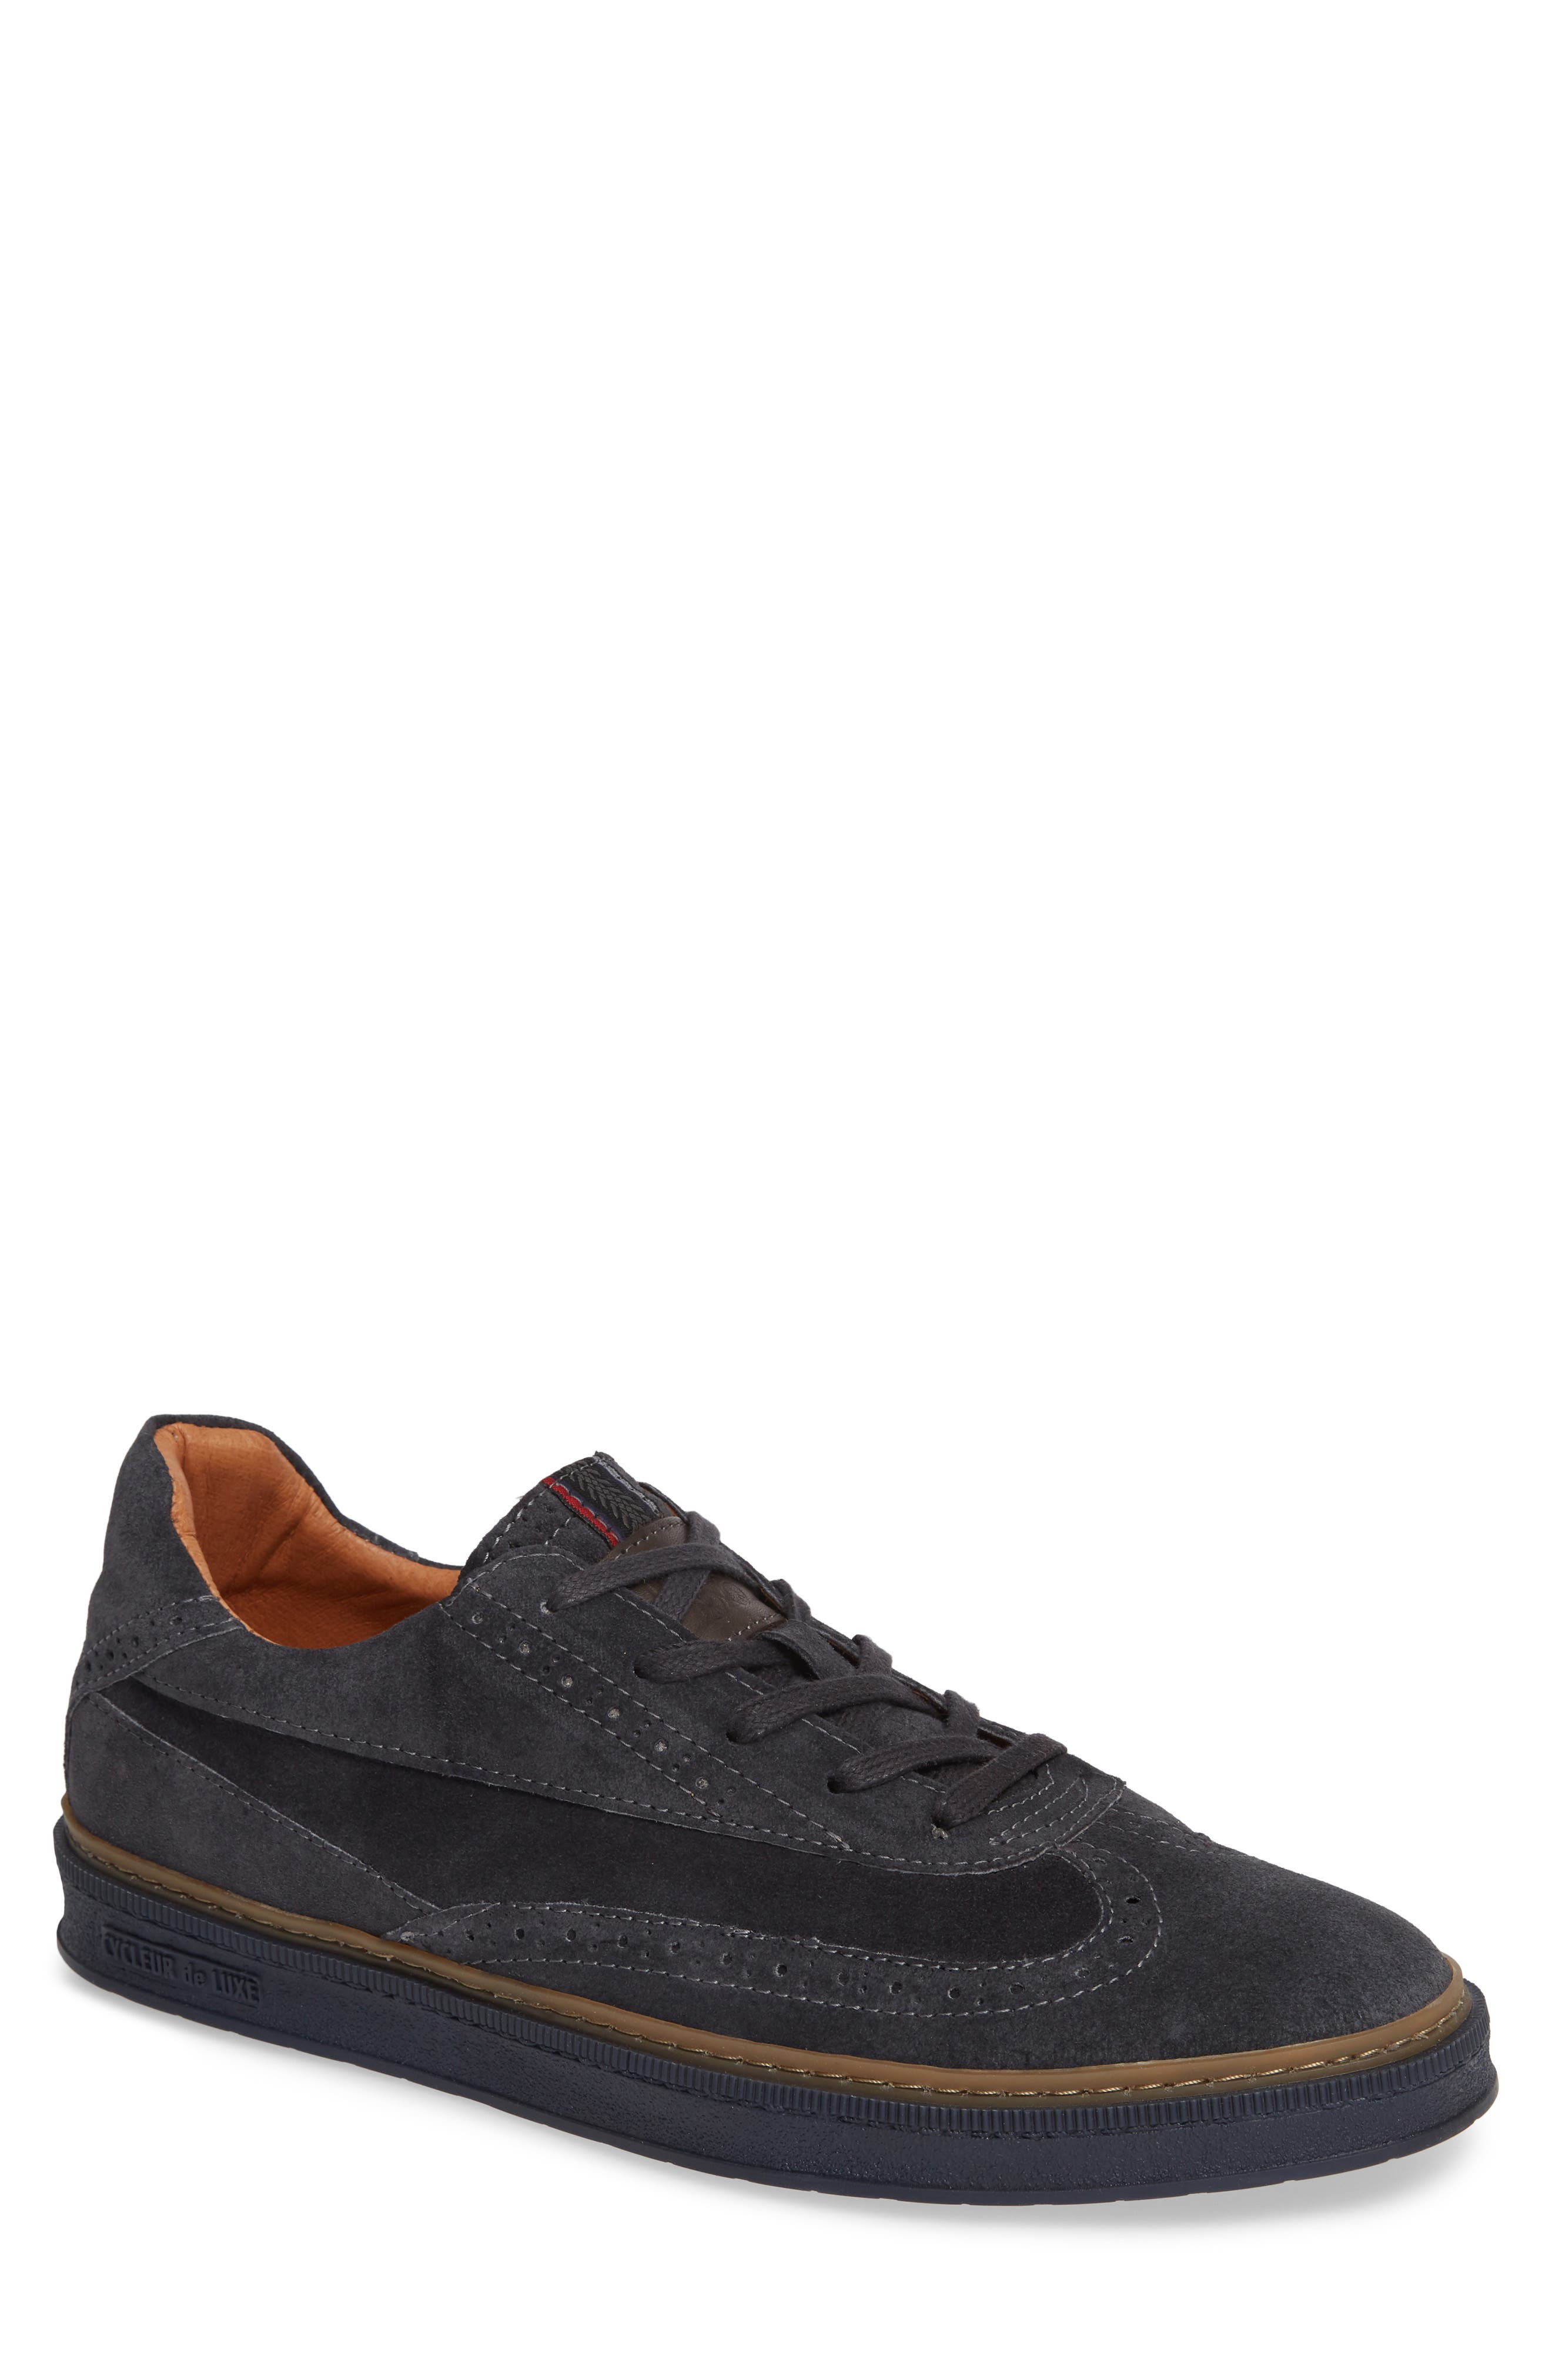 Querido Sneaker,                             Main thumbnail 1, color,                             ANTHRACITE